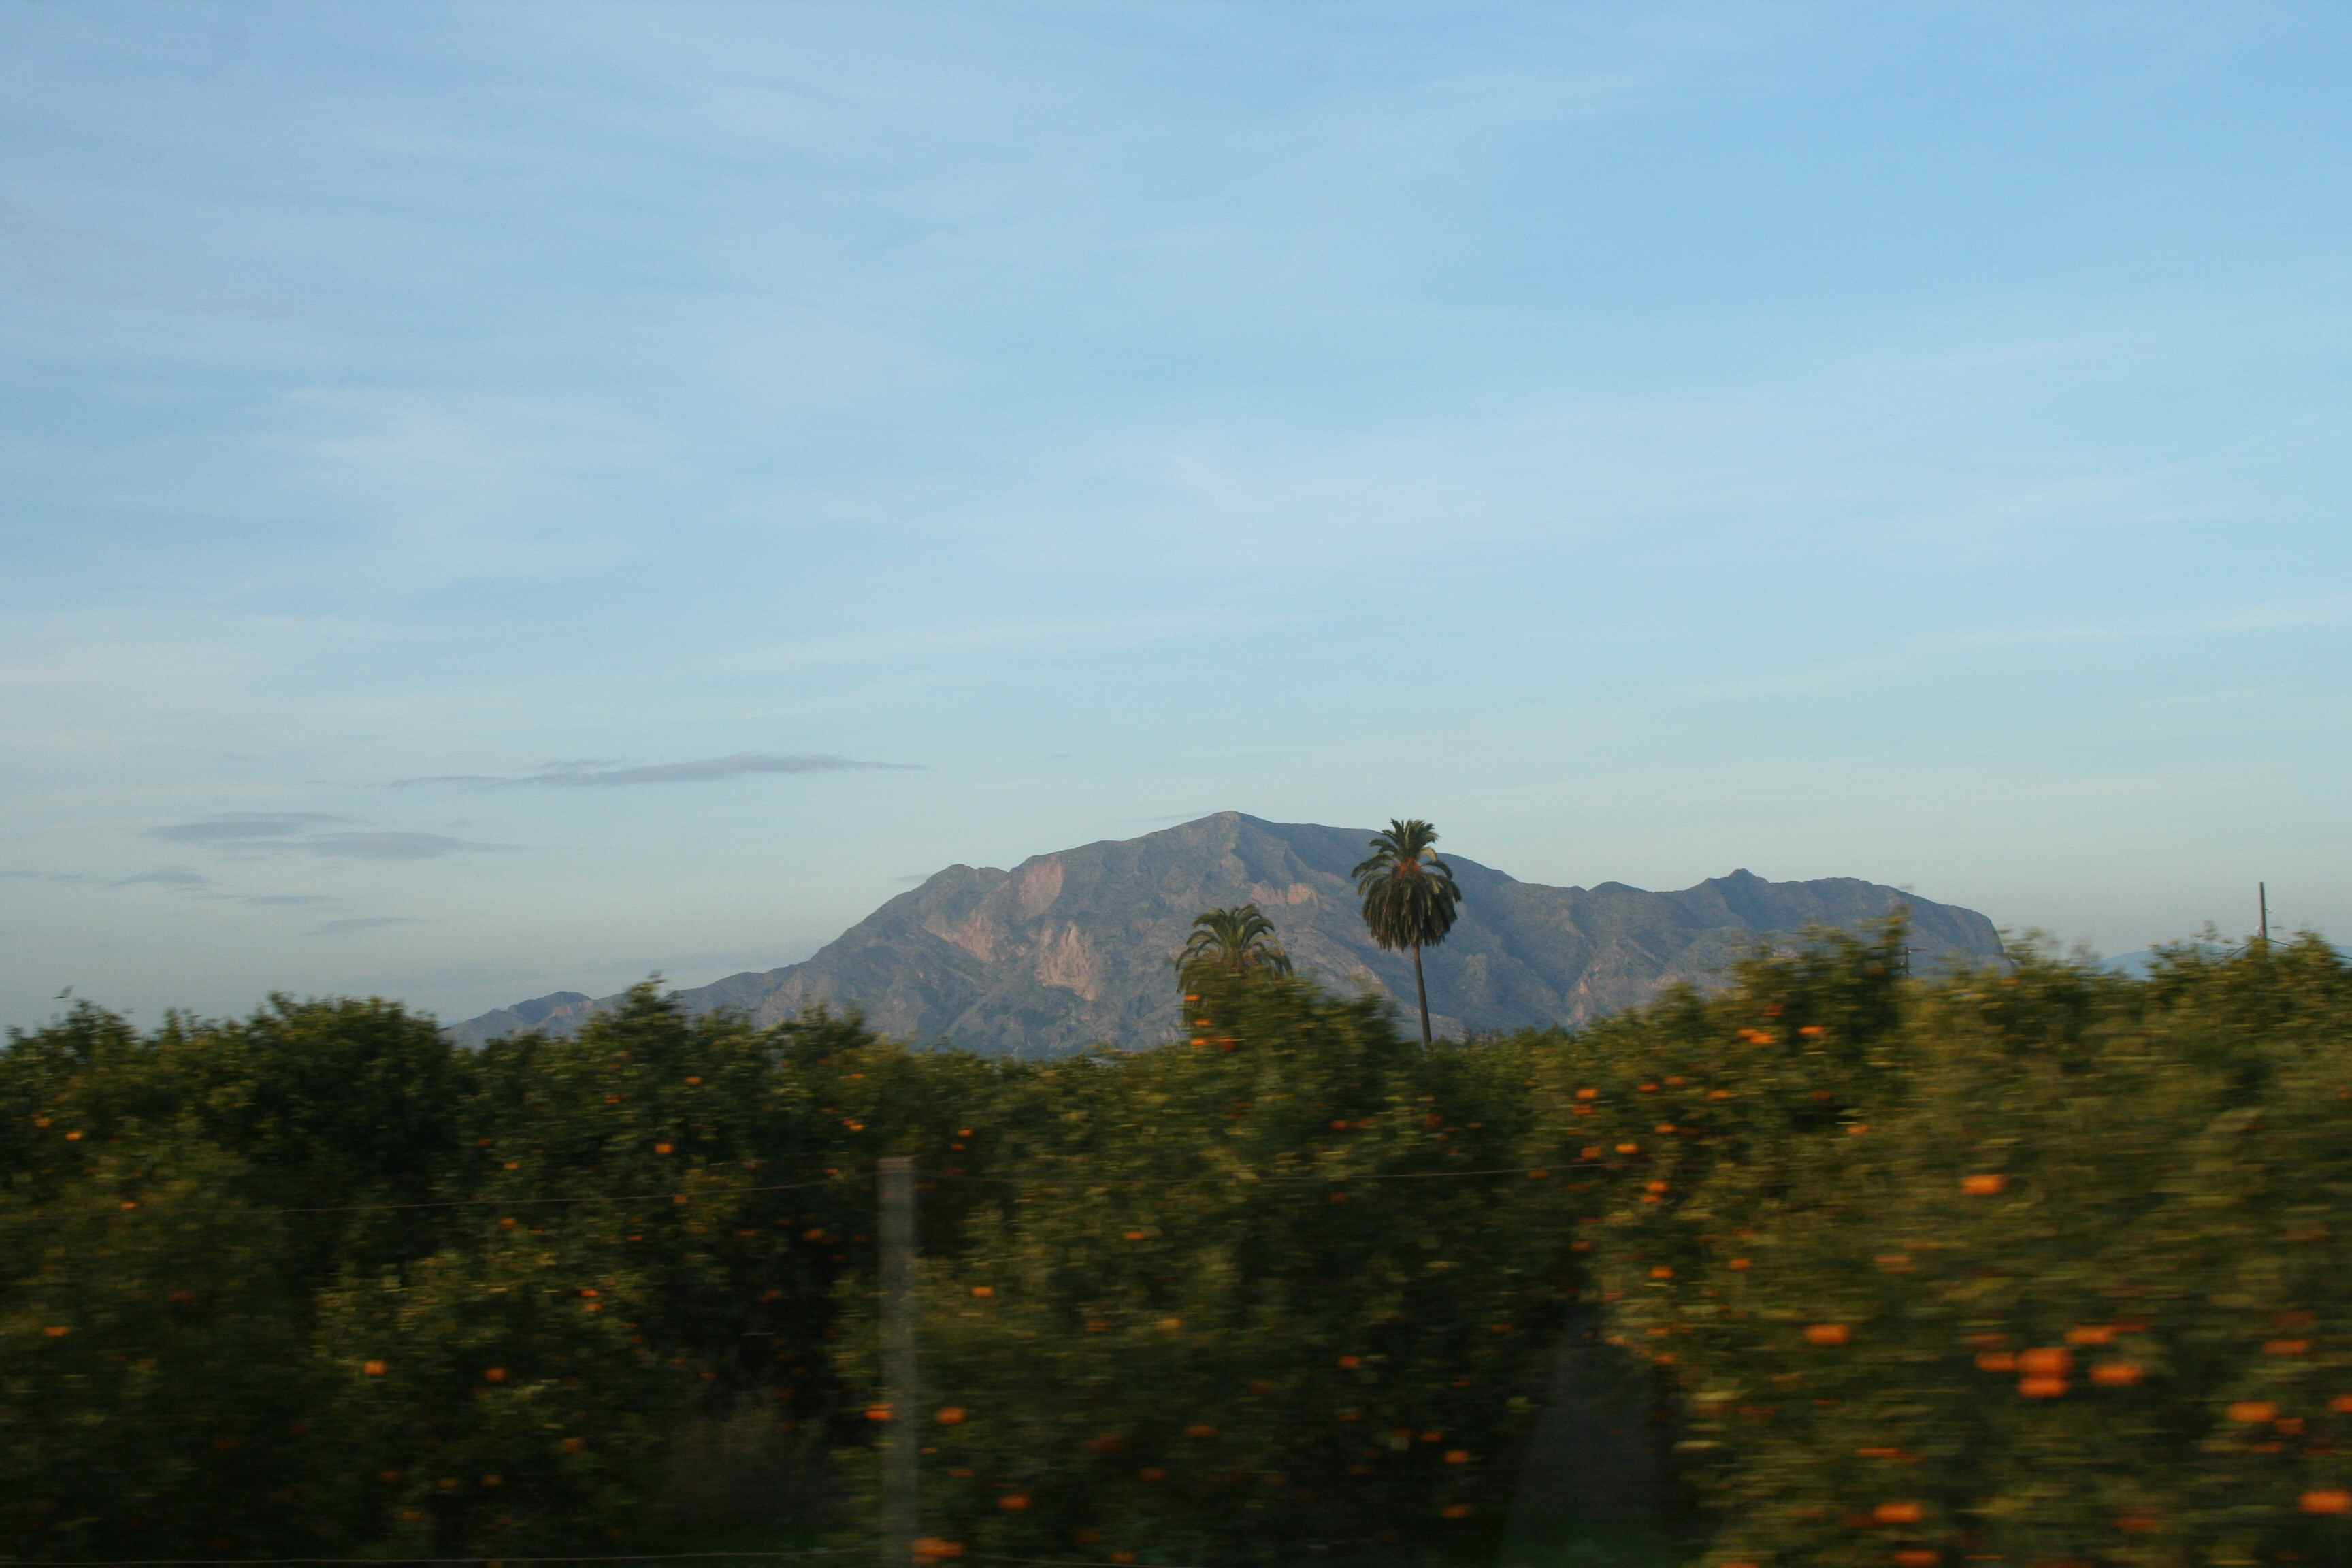 Orange & lemon groves abound around us. Enough of the coast? Head for the mountains...